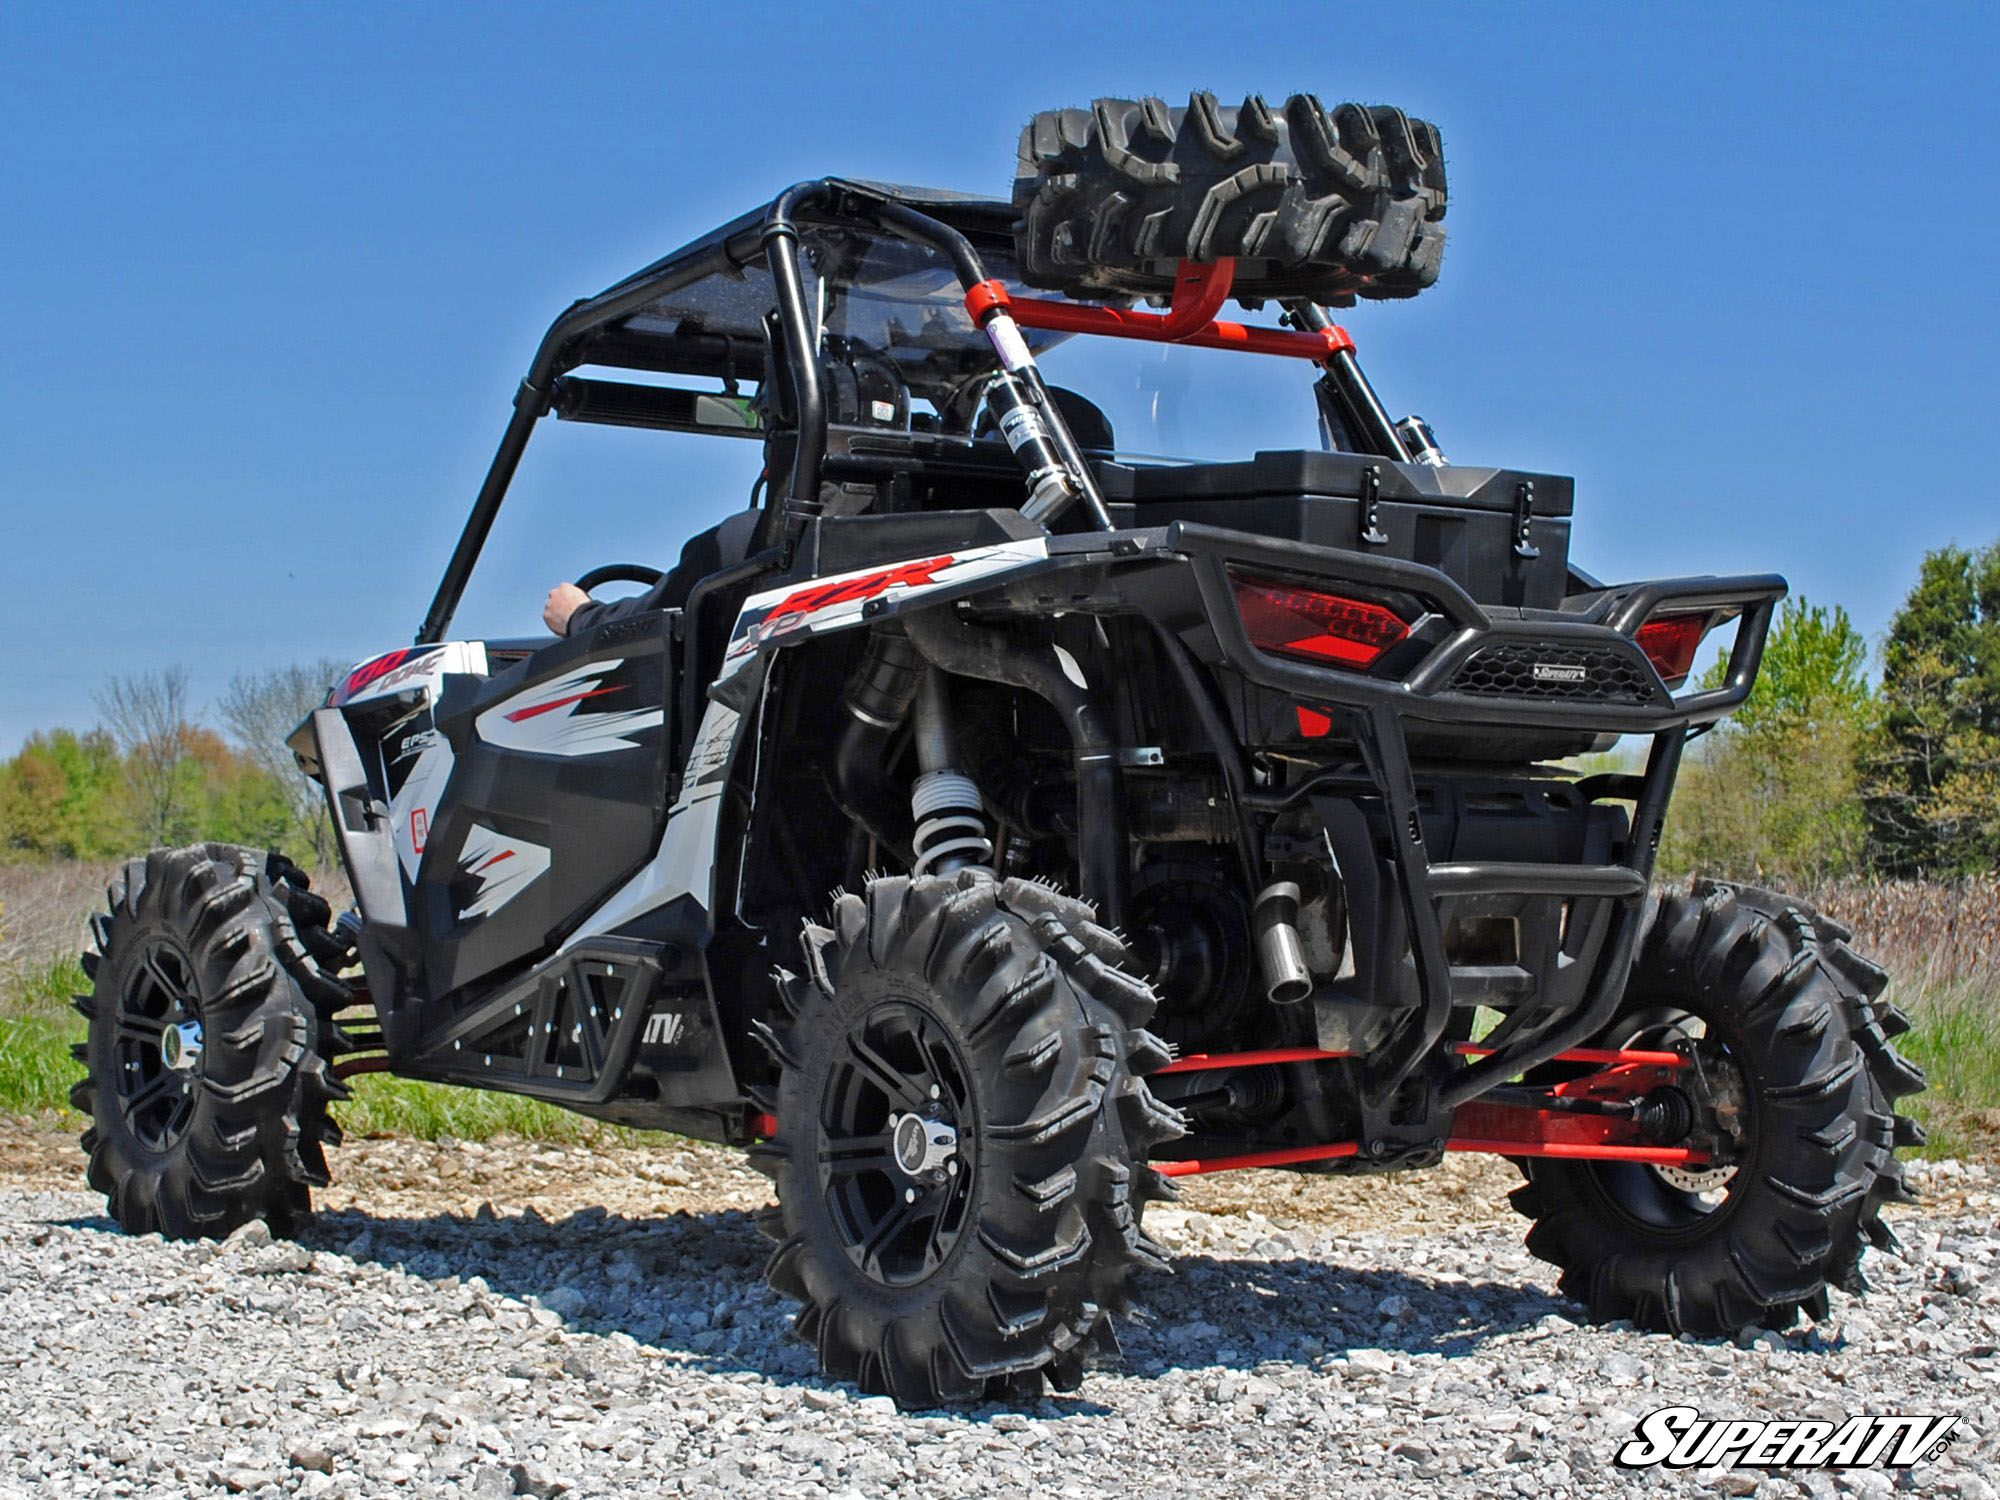 Super Atv Polaris Rzr 1000 Spare Tire Carrier